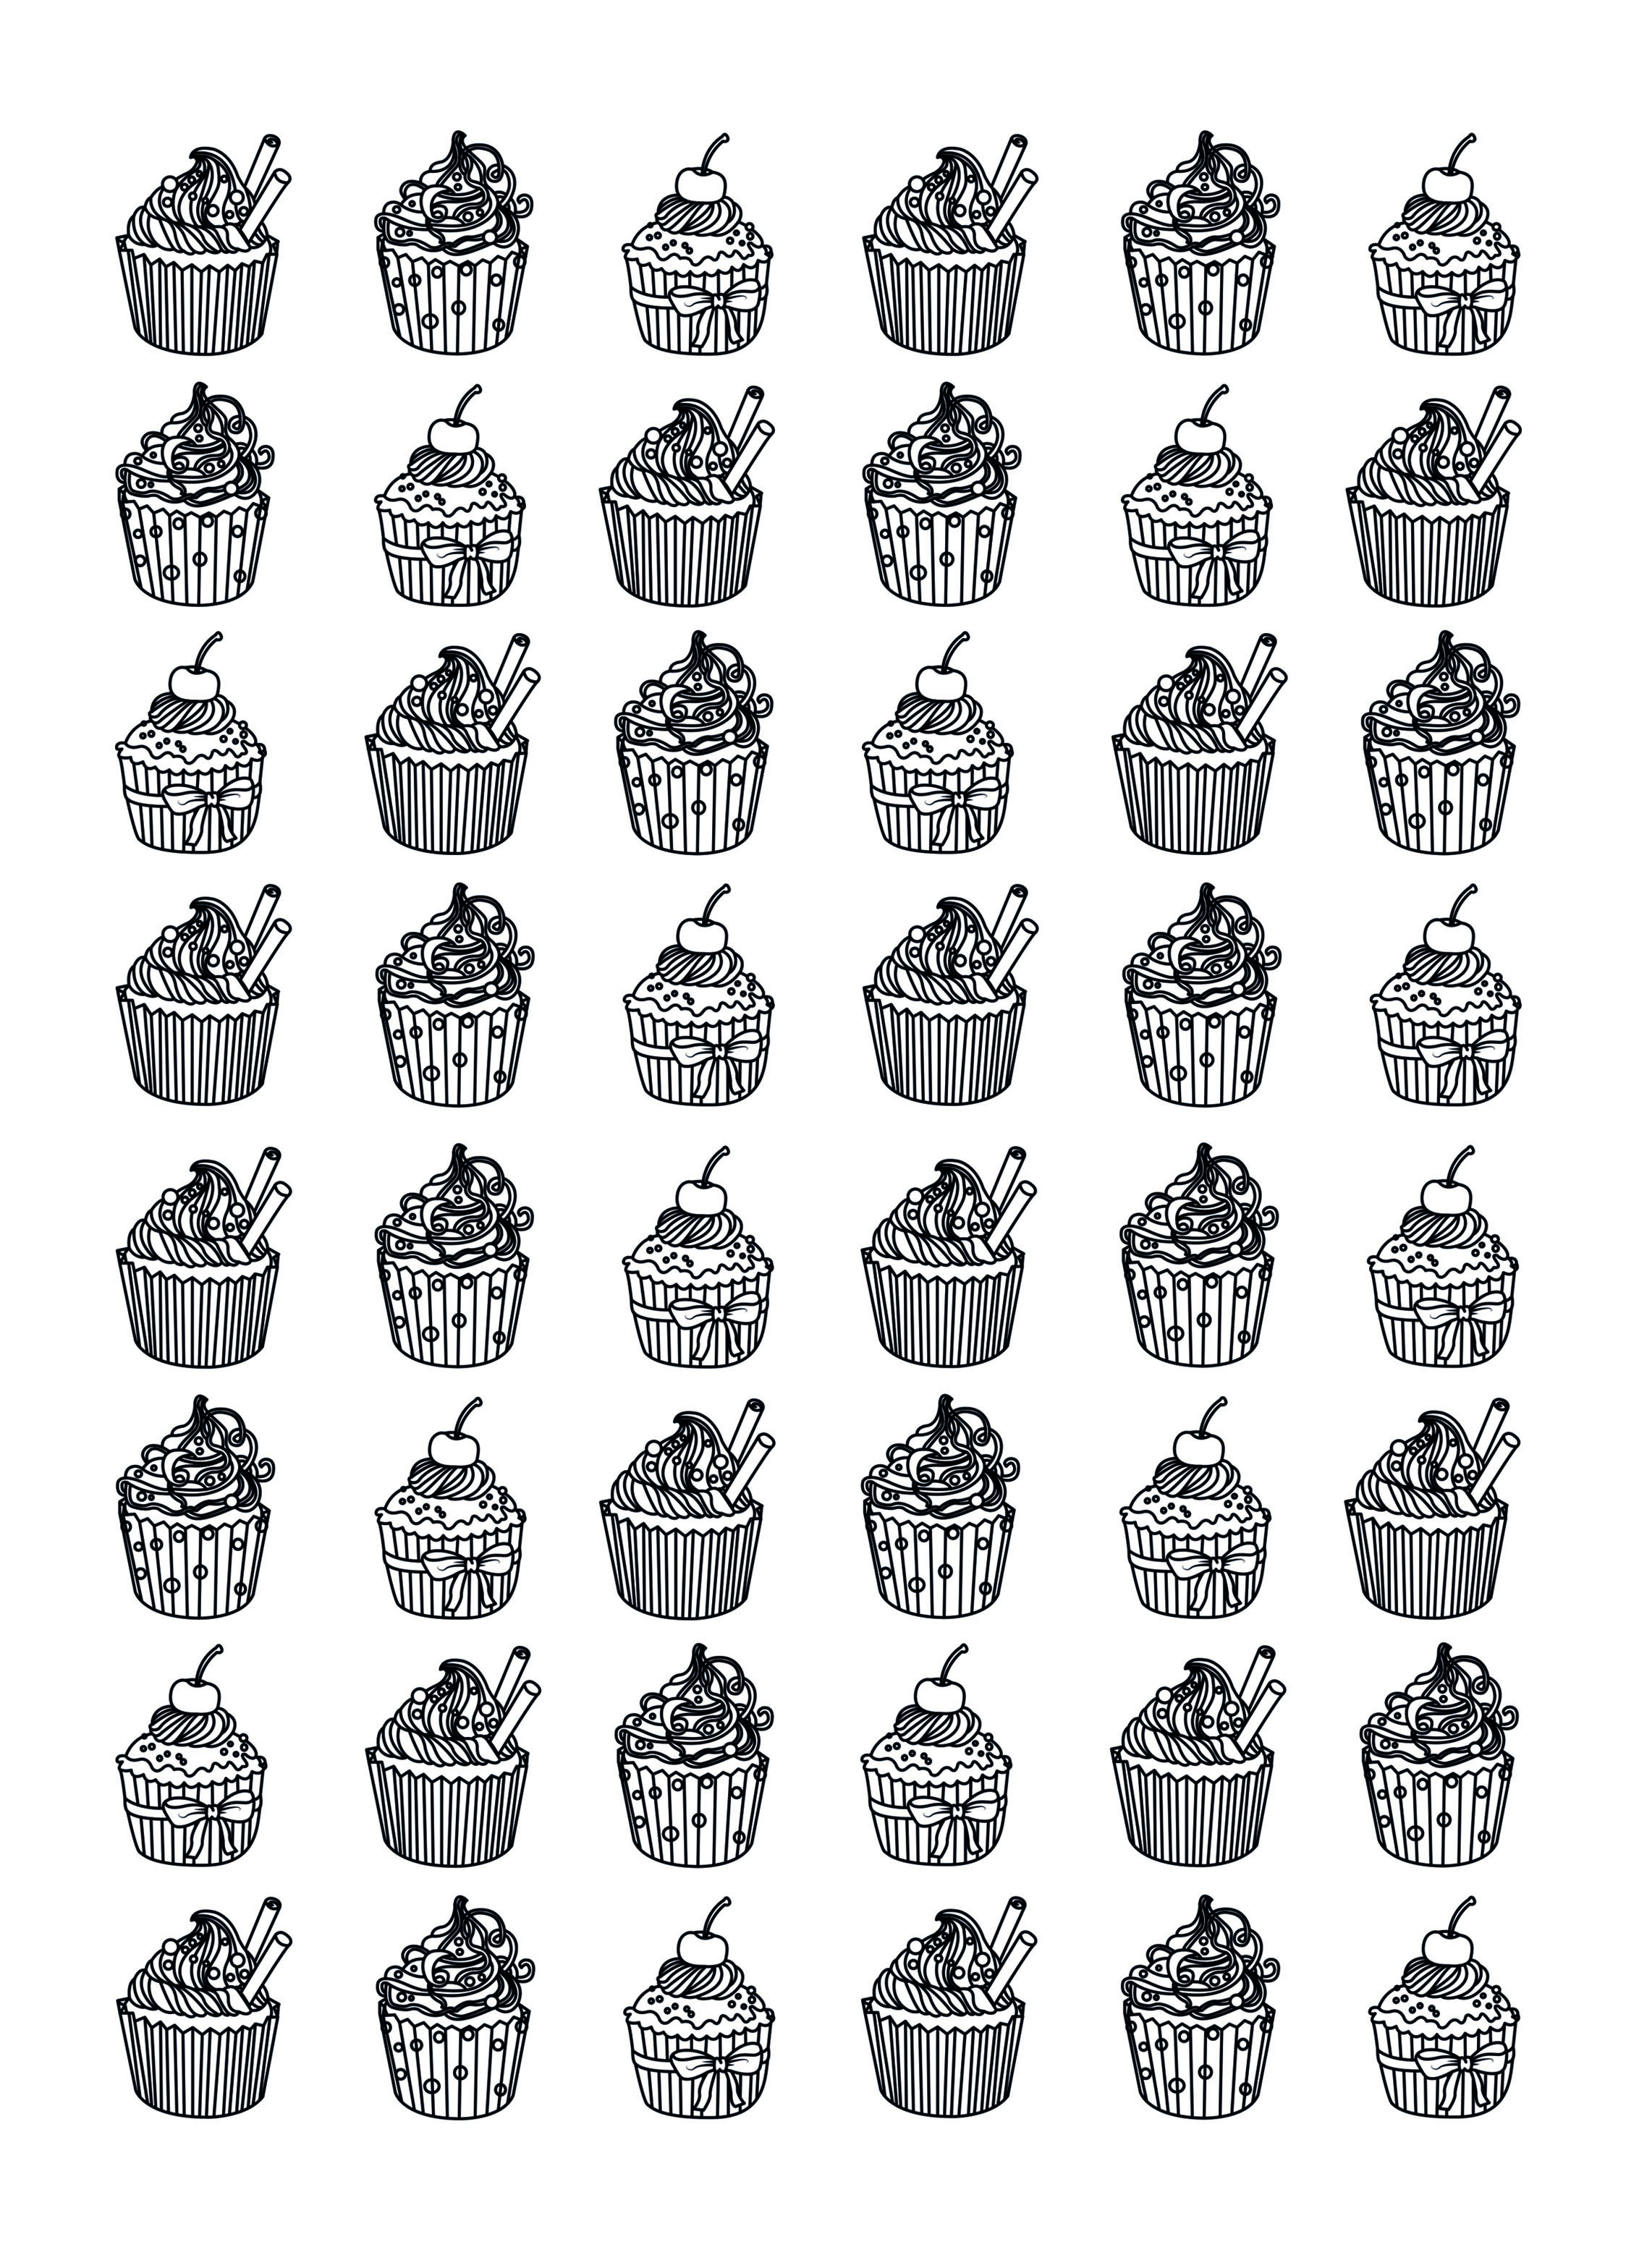 Cupcakes hard Celine - Cupcakes Adult Coloring Pages